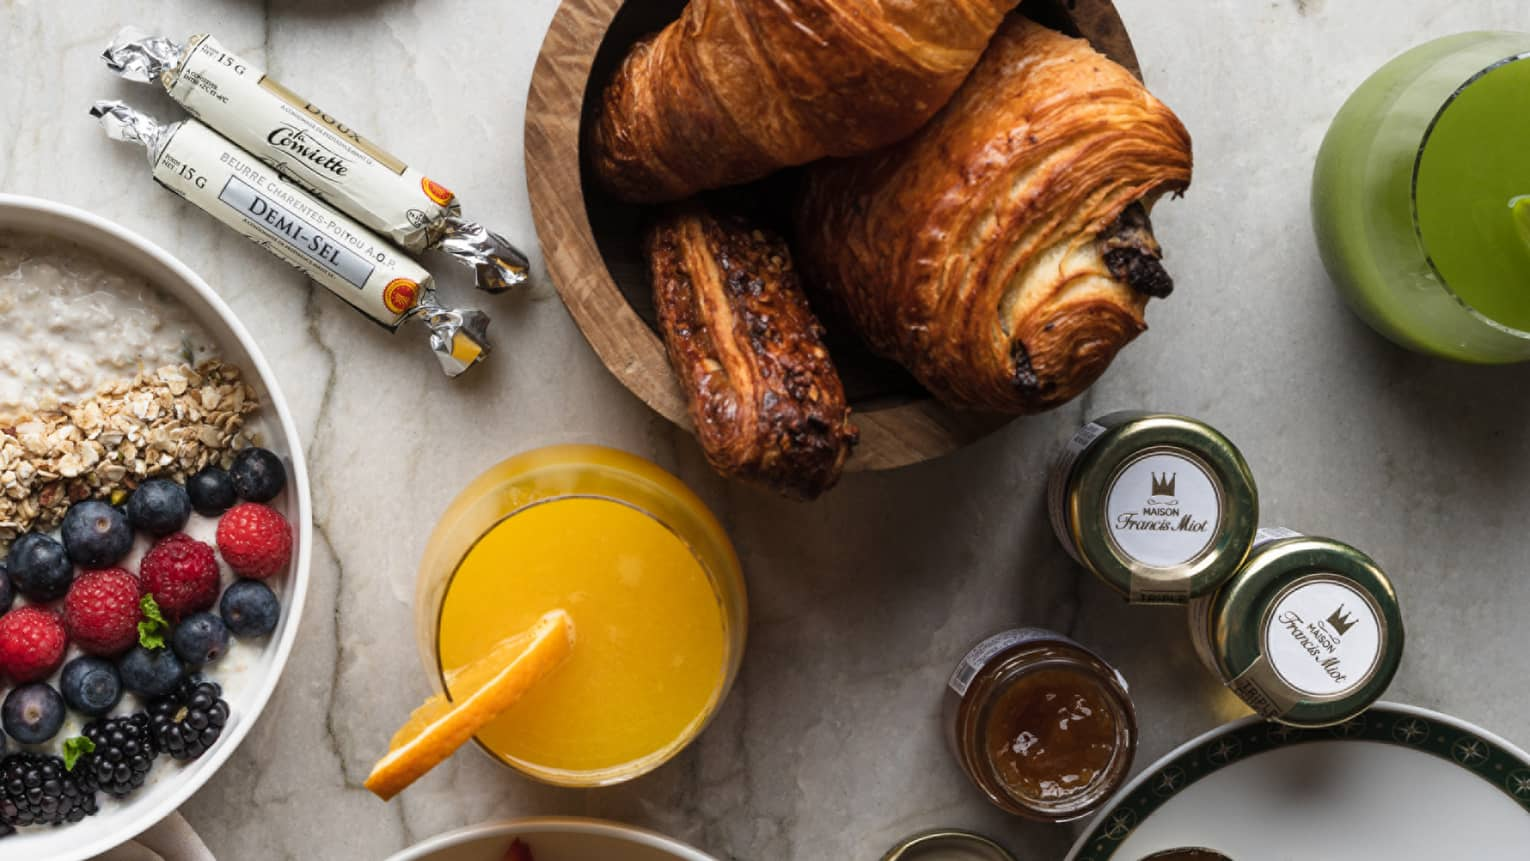 Overhead shot of croissants, orange juice, jam assortment and other brunch items on a marbled table top